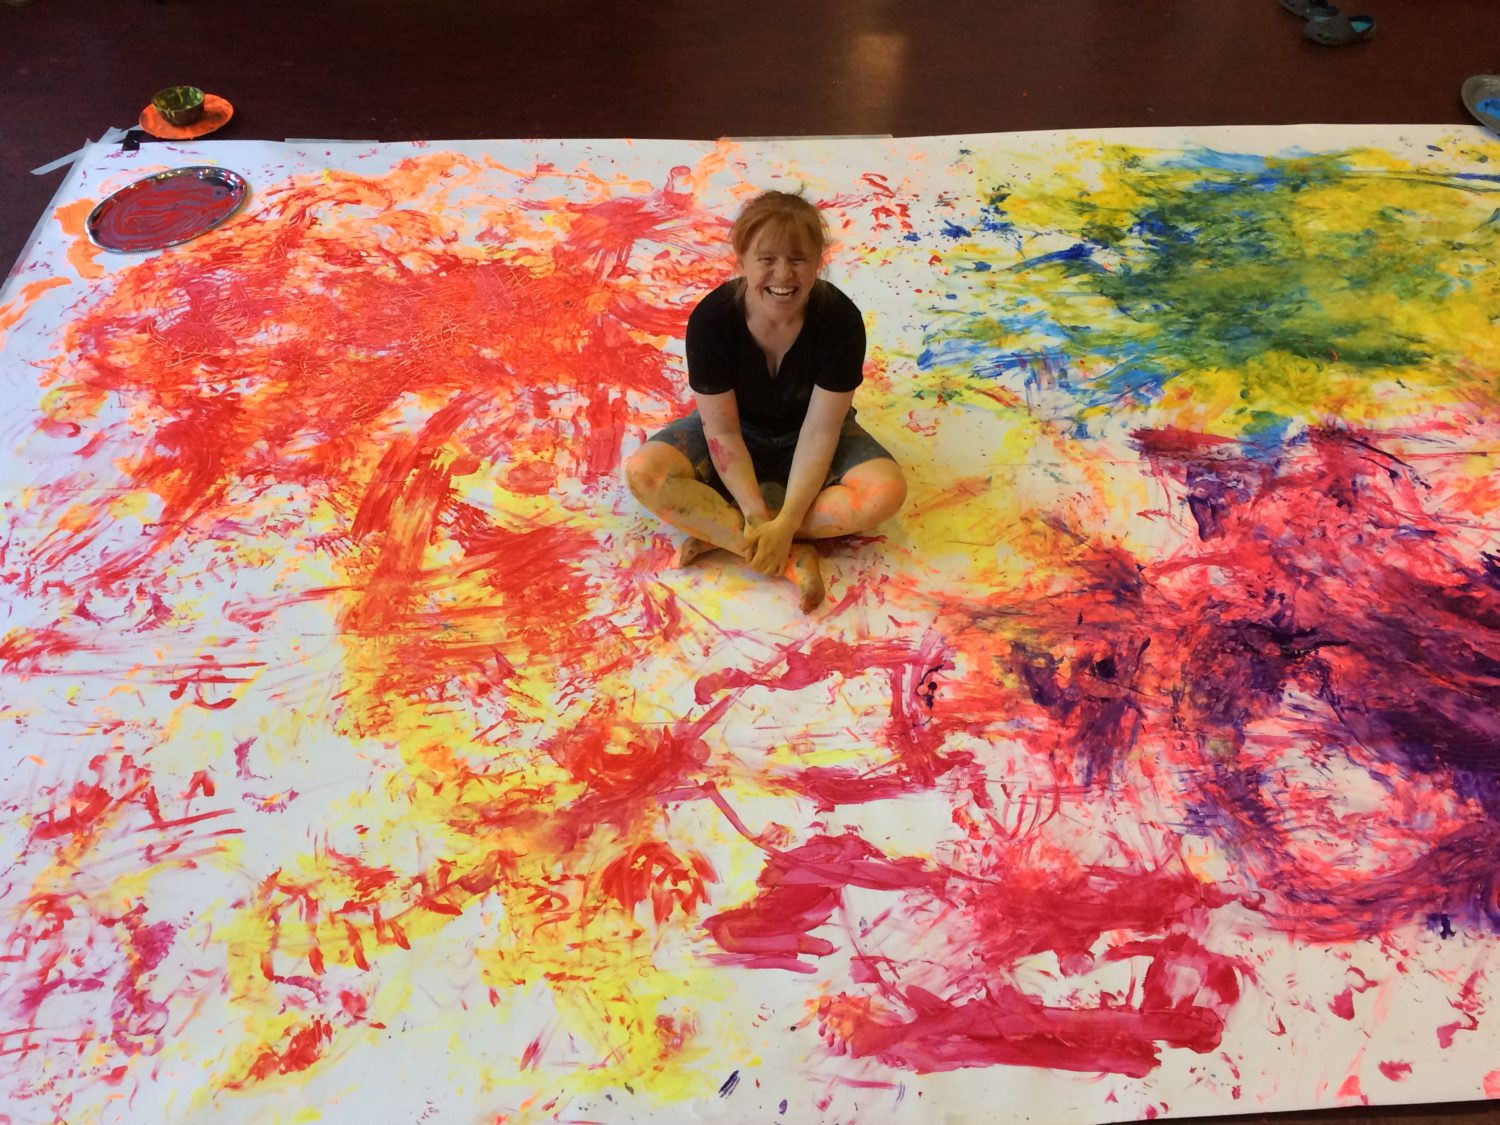 The lead artist, JoAnne Haines, is sitting cross-legged in the centre of a large piece of paper on the floor. The paper is covered with brightly coloured paint in non-uniform patterns. There are finger marks and footprints made with the paint among the patterns. JoAnne is covered in paint and is grinning at the camera.